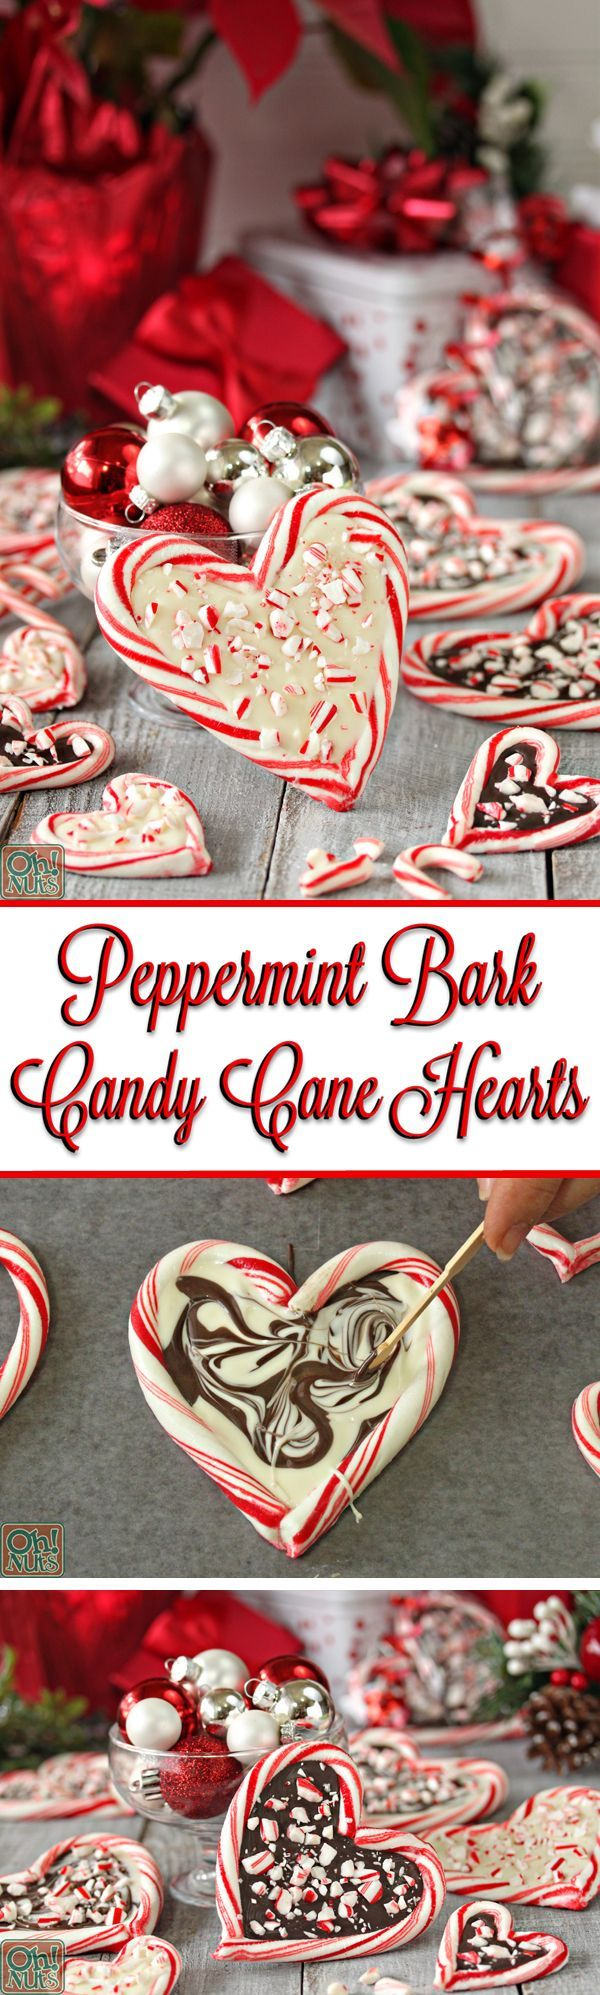 Peppermint bark is a classic Christmas candy. Candy canes are a classic Christmas candy. And when these two classics collide? You get an entirely new (but soon-